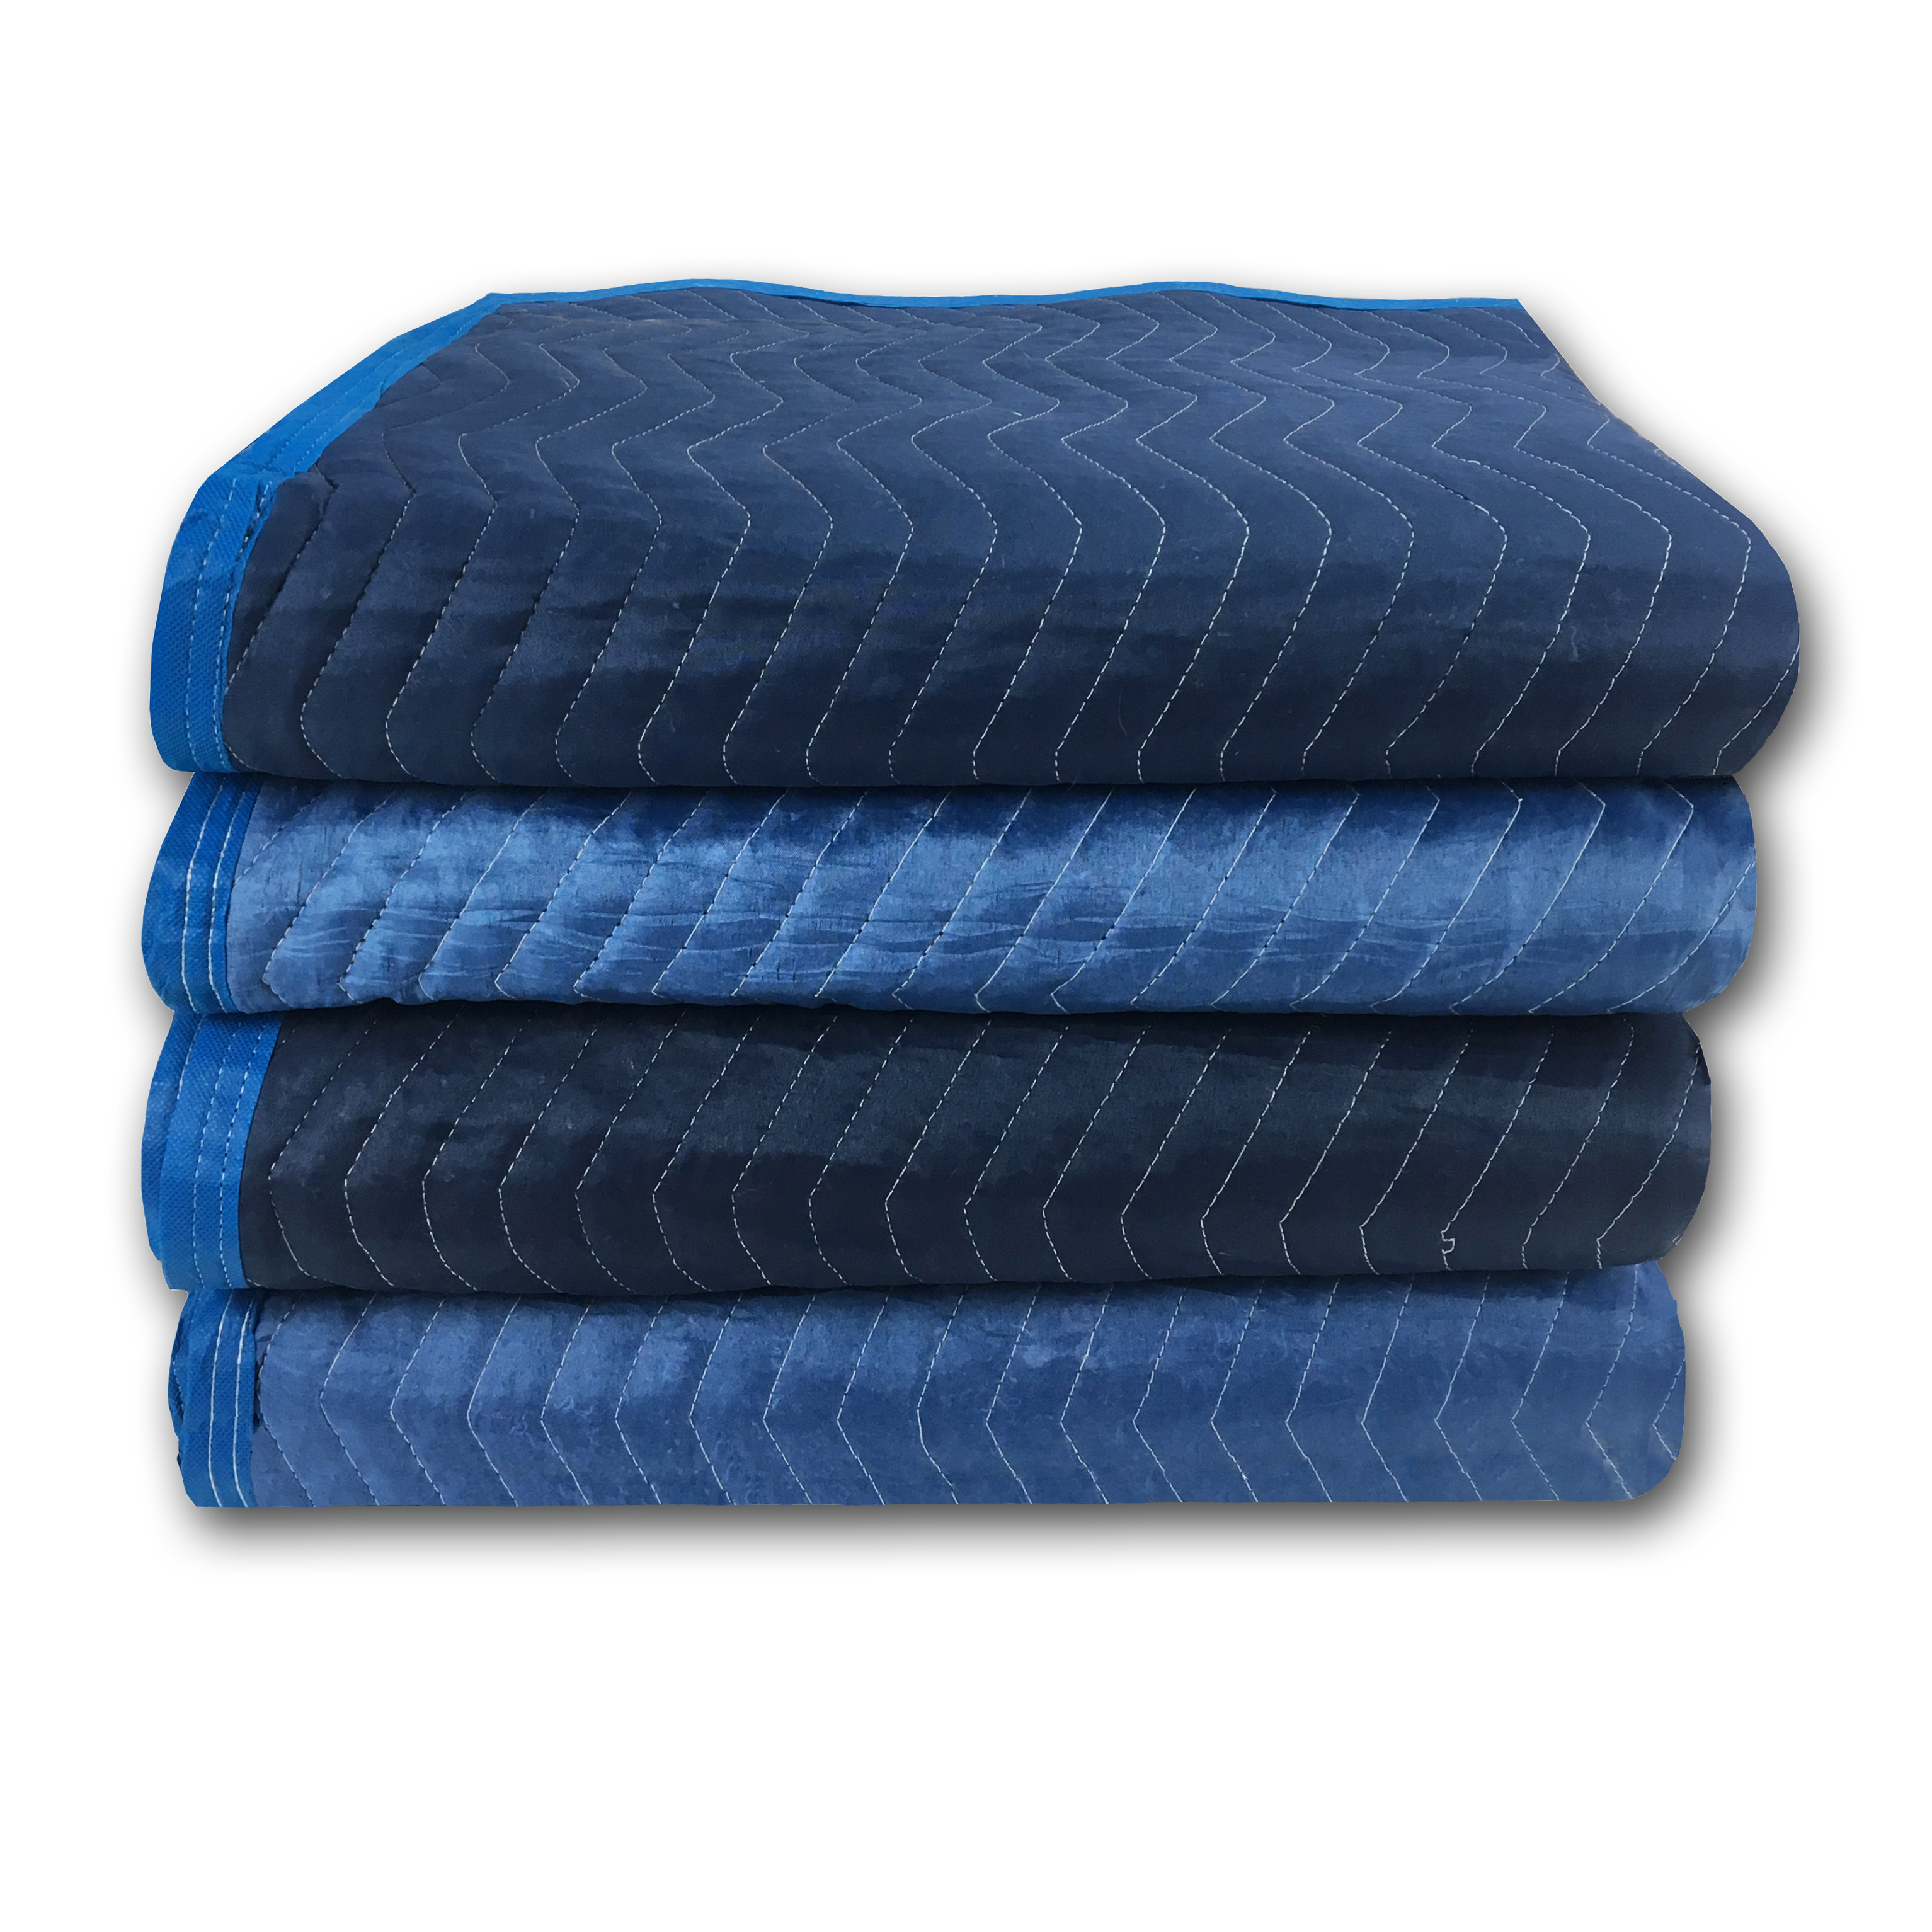 Uboxes Super Supreme Moving Blankets, 72 x 80 in, 7.92lbs each, 4 Pack